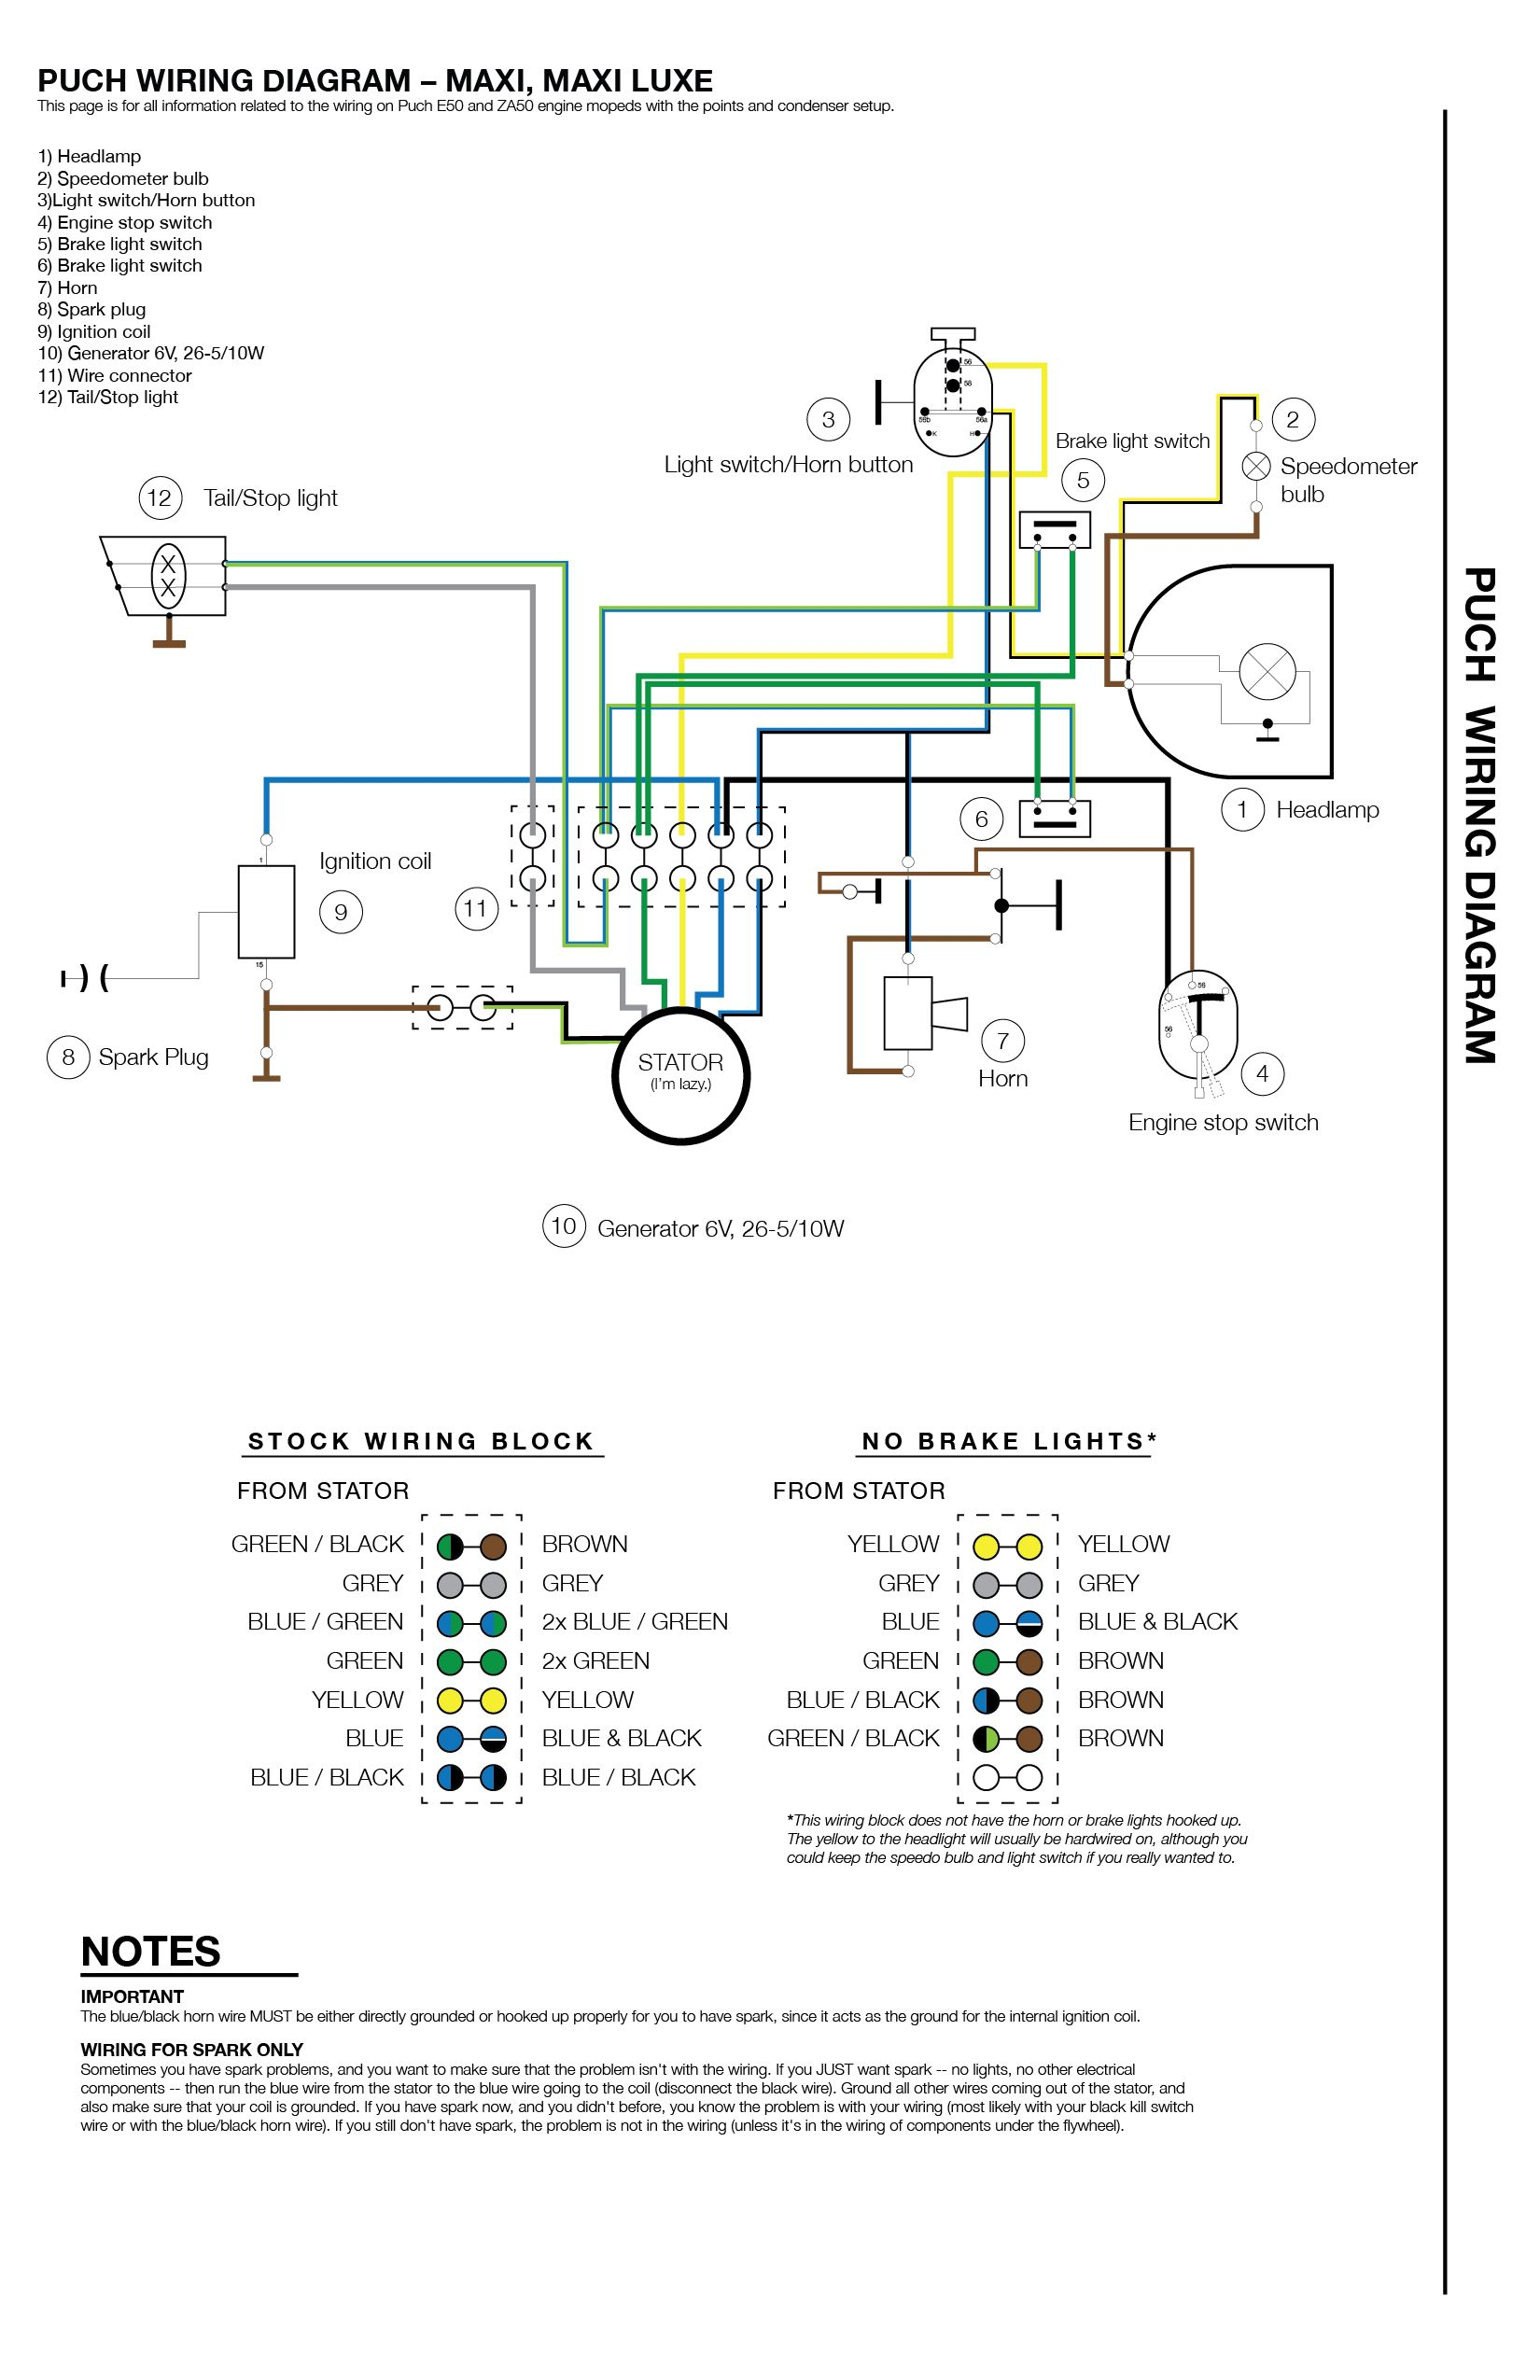 Image:Puch_wiring-02.jpg | Electrical diagram, Electrical ...